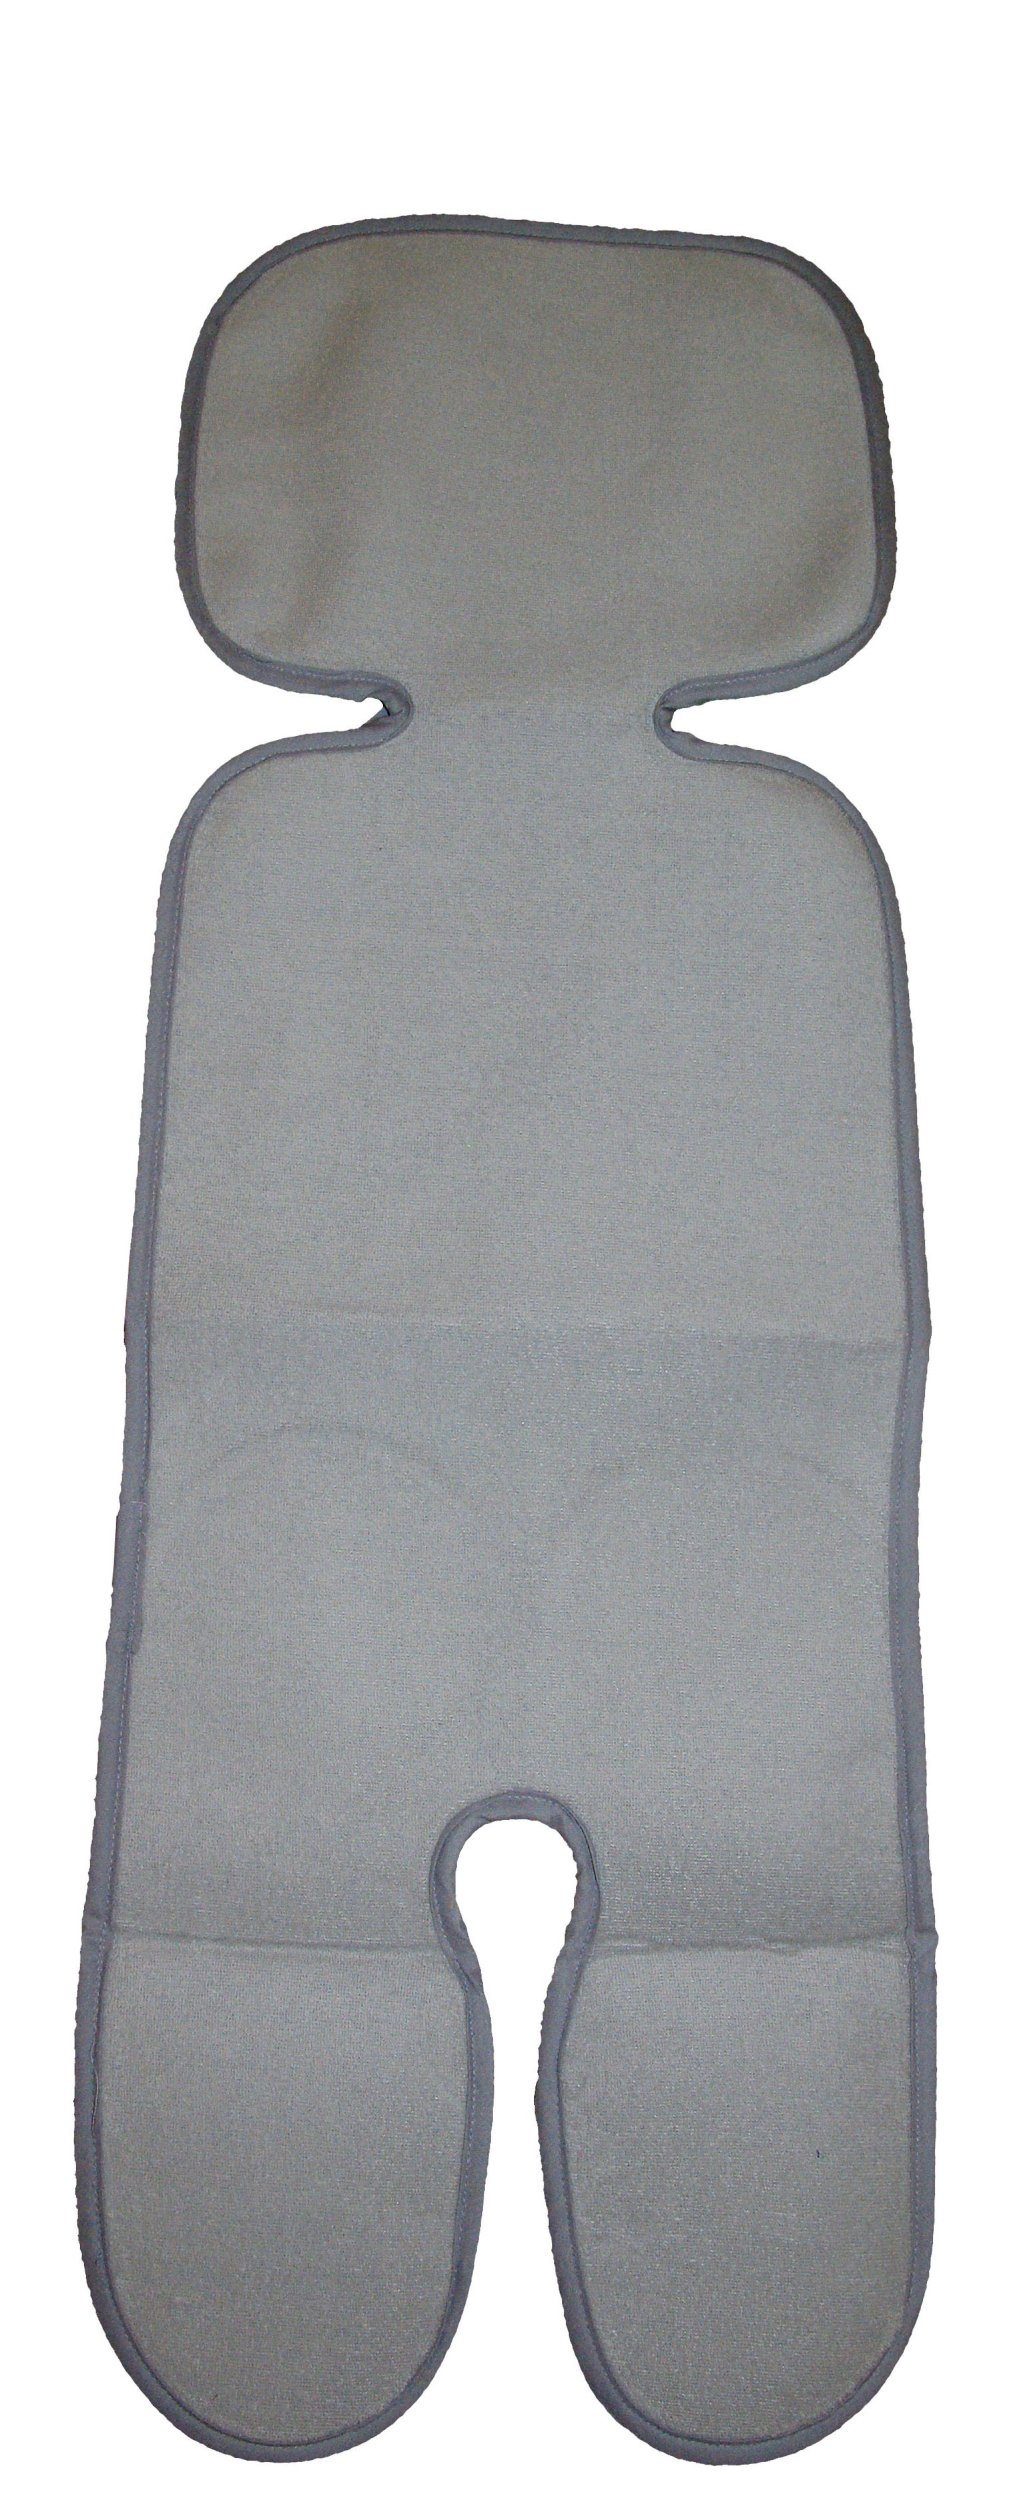 Sweat back mesh stroller seat (also used in the child seat available) Gray